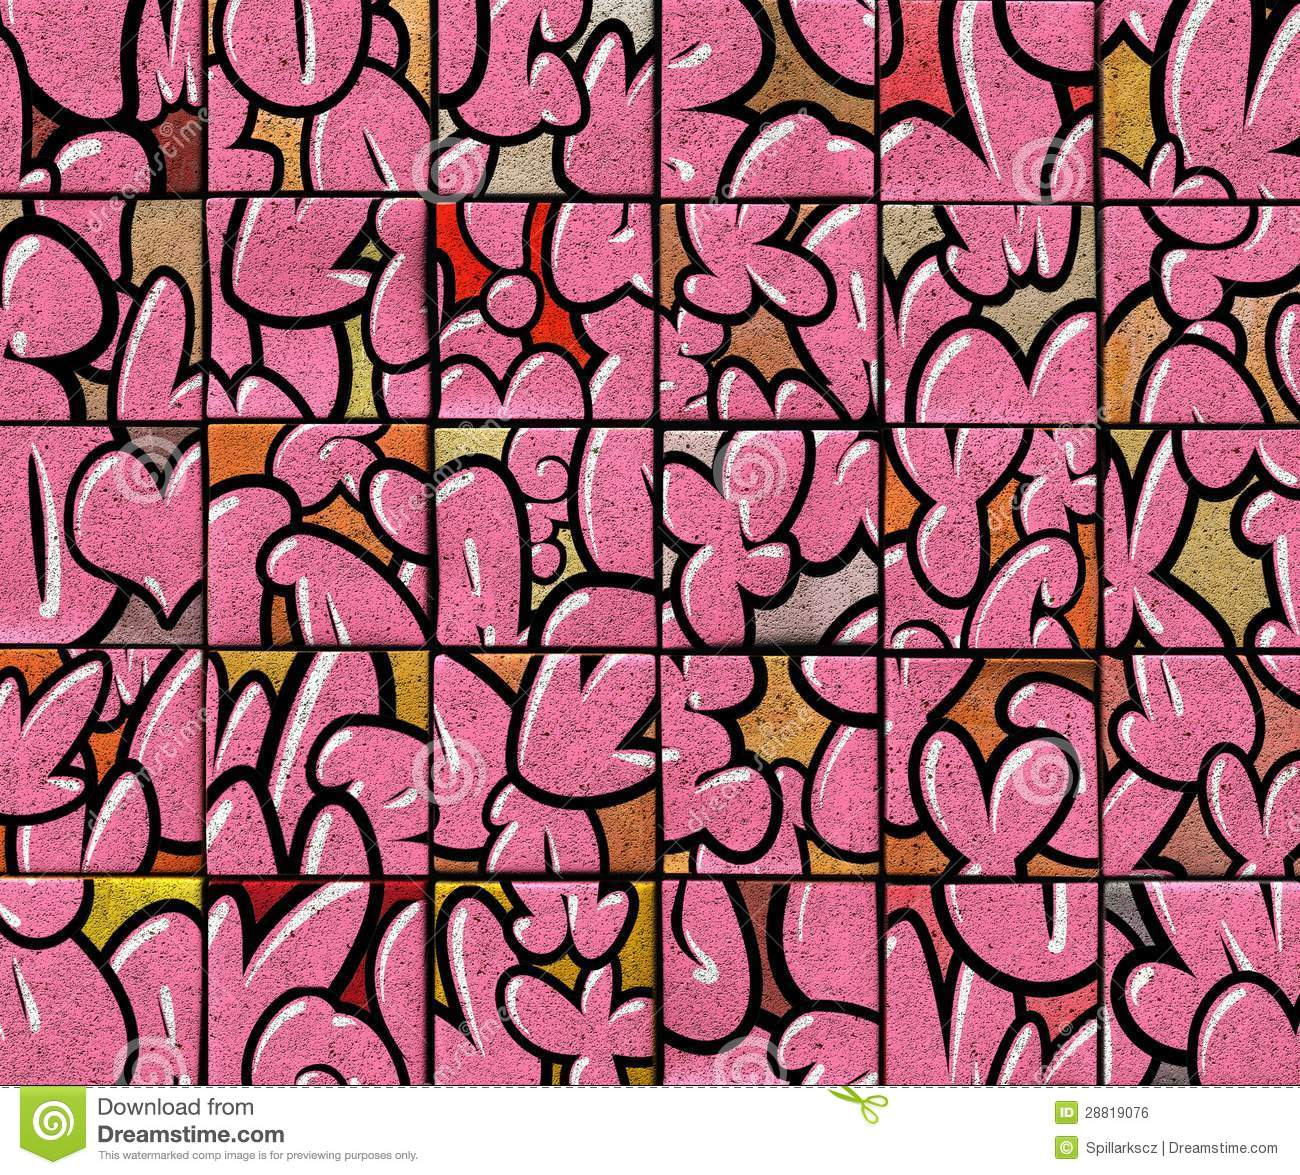 Painter And Decorator Prices >> 3d Abstract Graffiti Bubble Font Backdrop In Pink Royalty ...